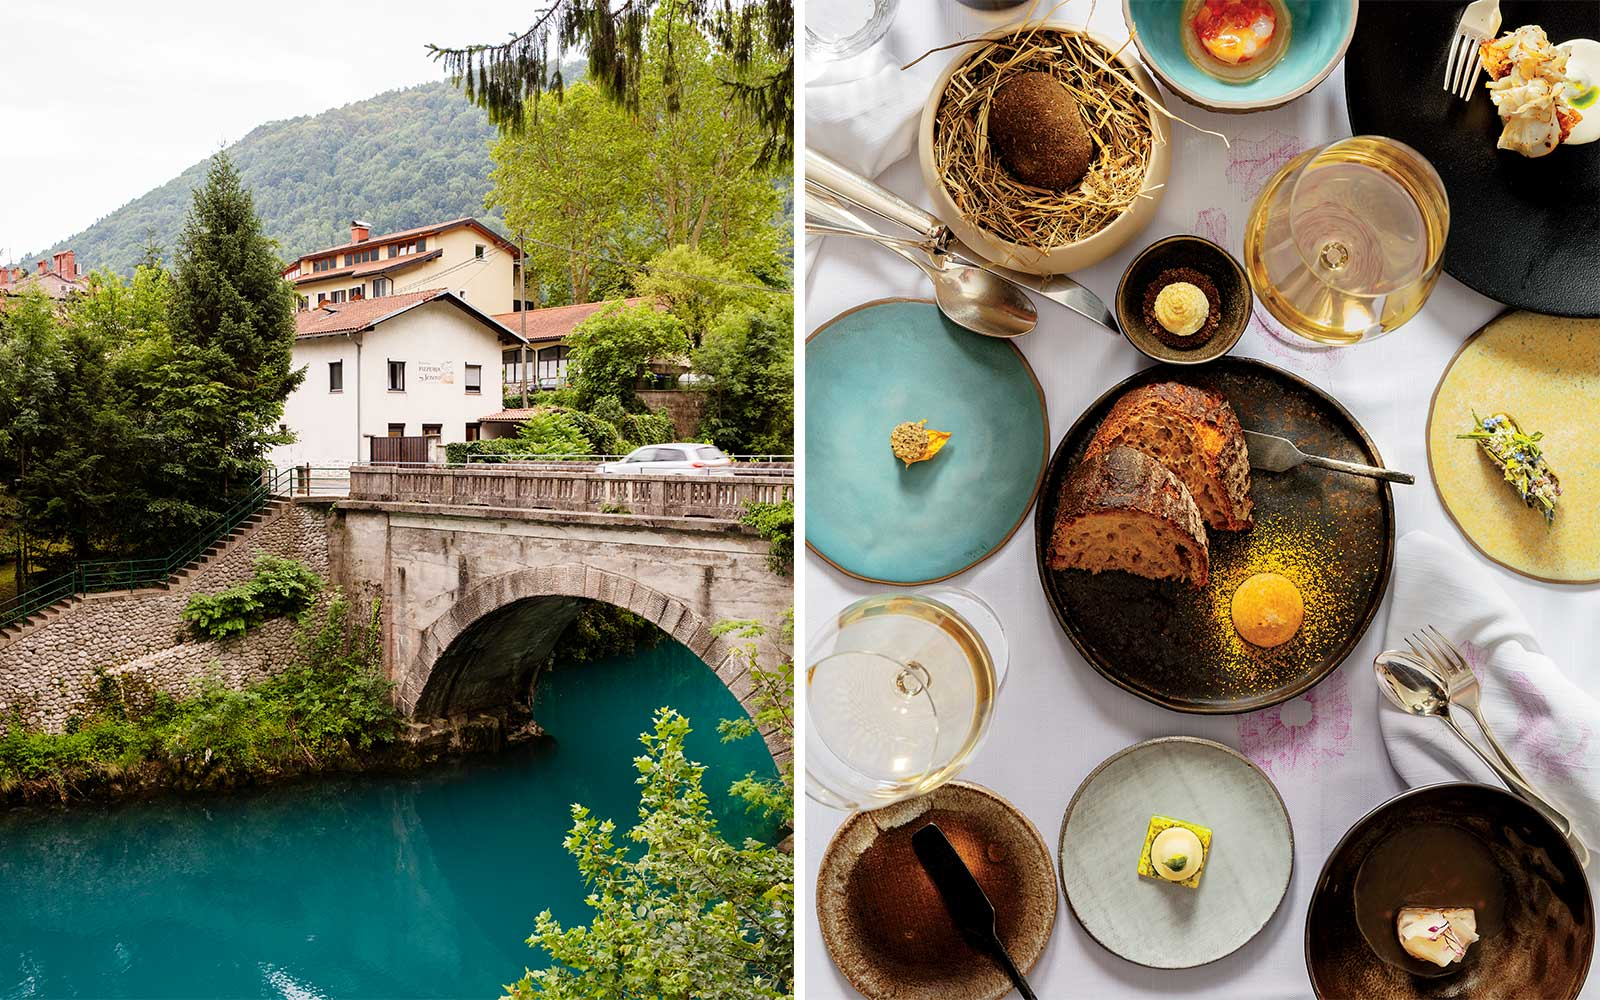 View of Kobarid, Slovenia, and dishes from Hisa Franko restaurant